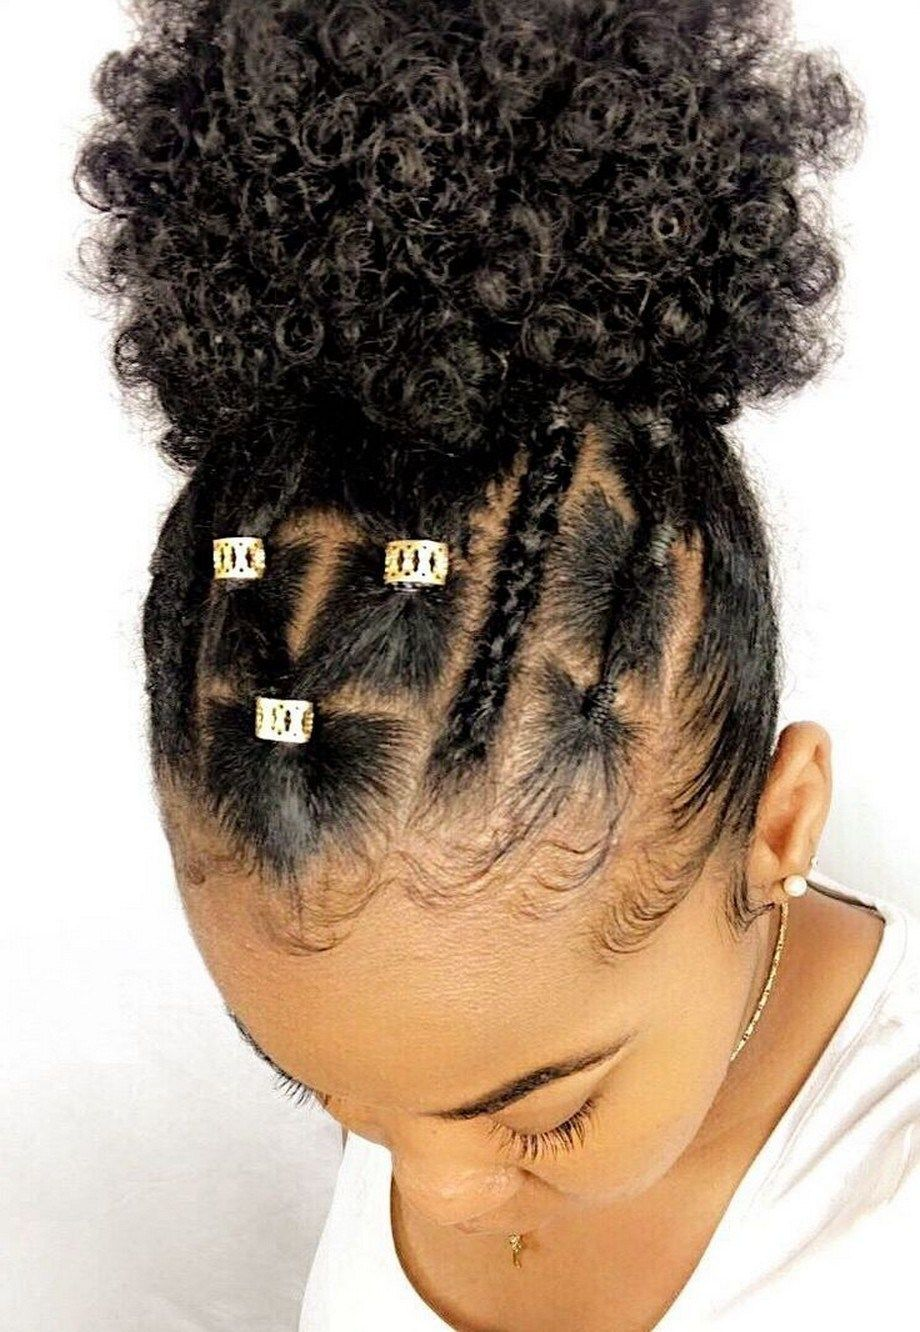 37 Back To School Hairstyles For Your Little Natural Girl 11 With Images Protective Hairstyles For Natural Hair Hair Styles Natural Hair Styles